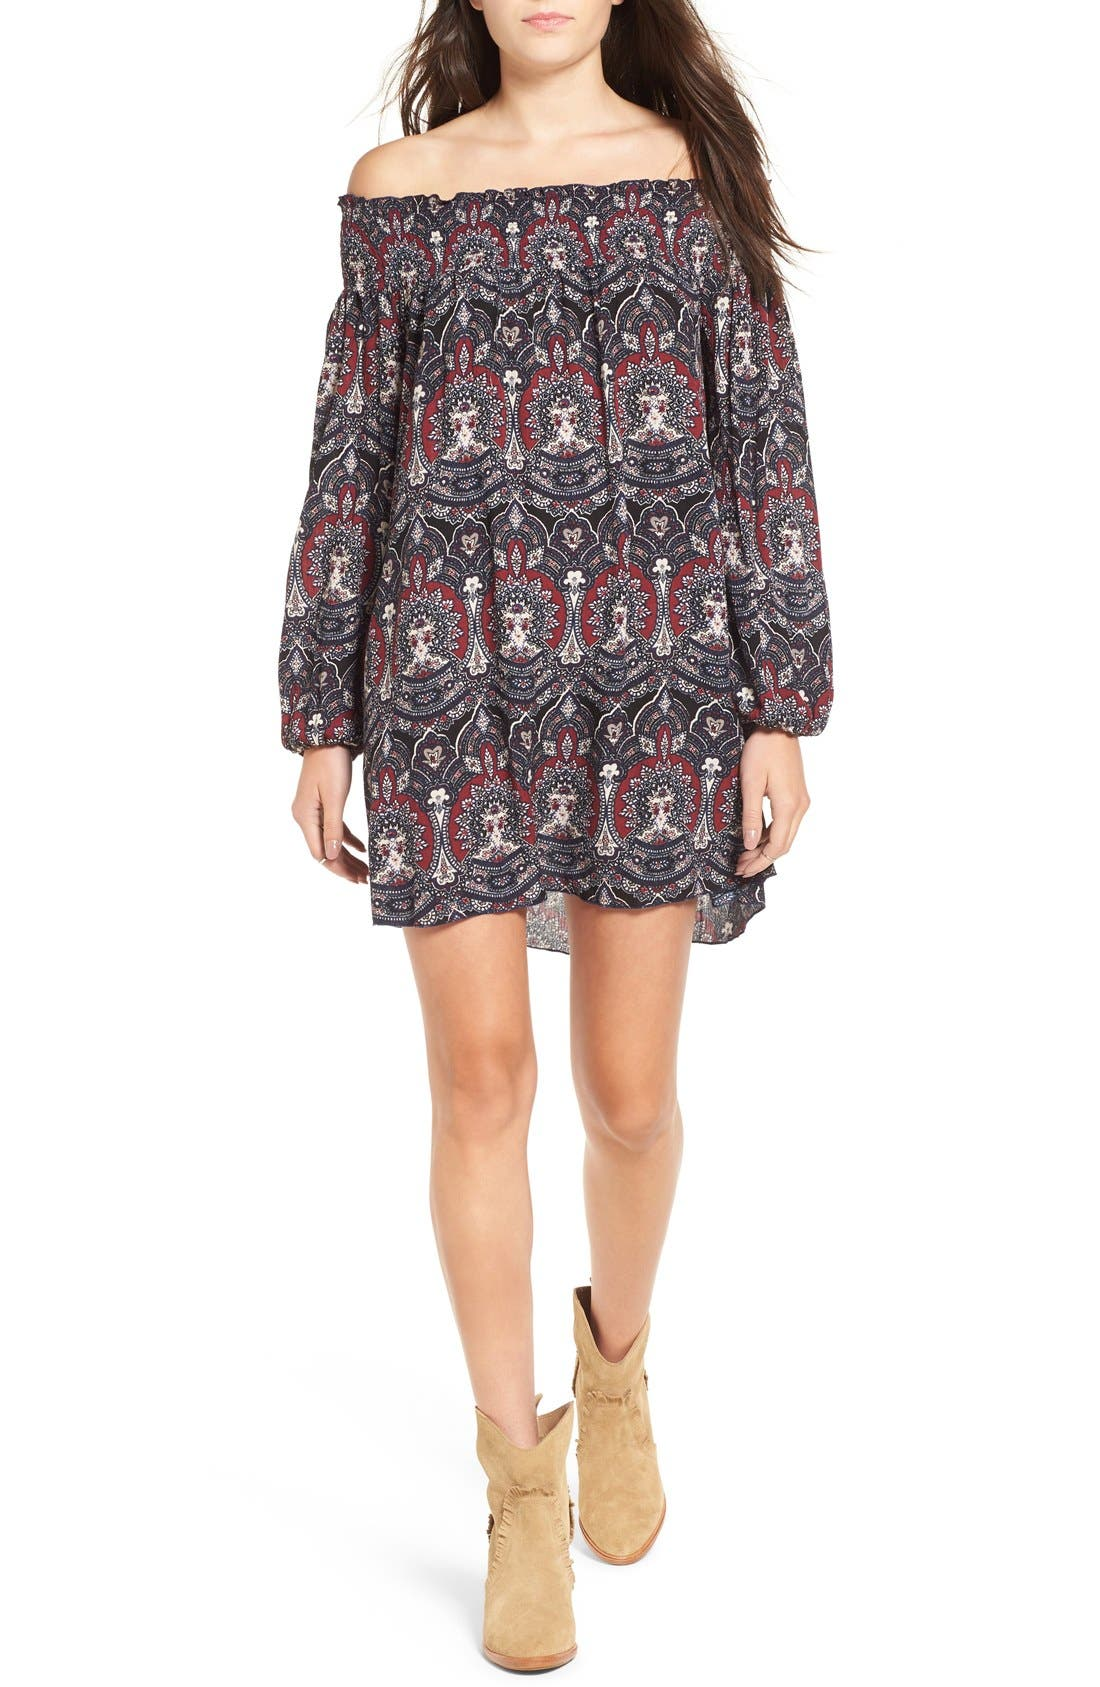 Alternate Image 1 Selected - Band of Gypsies Floral Print Off the Shoulder Shift Dress